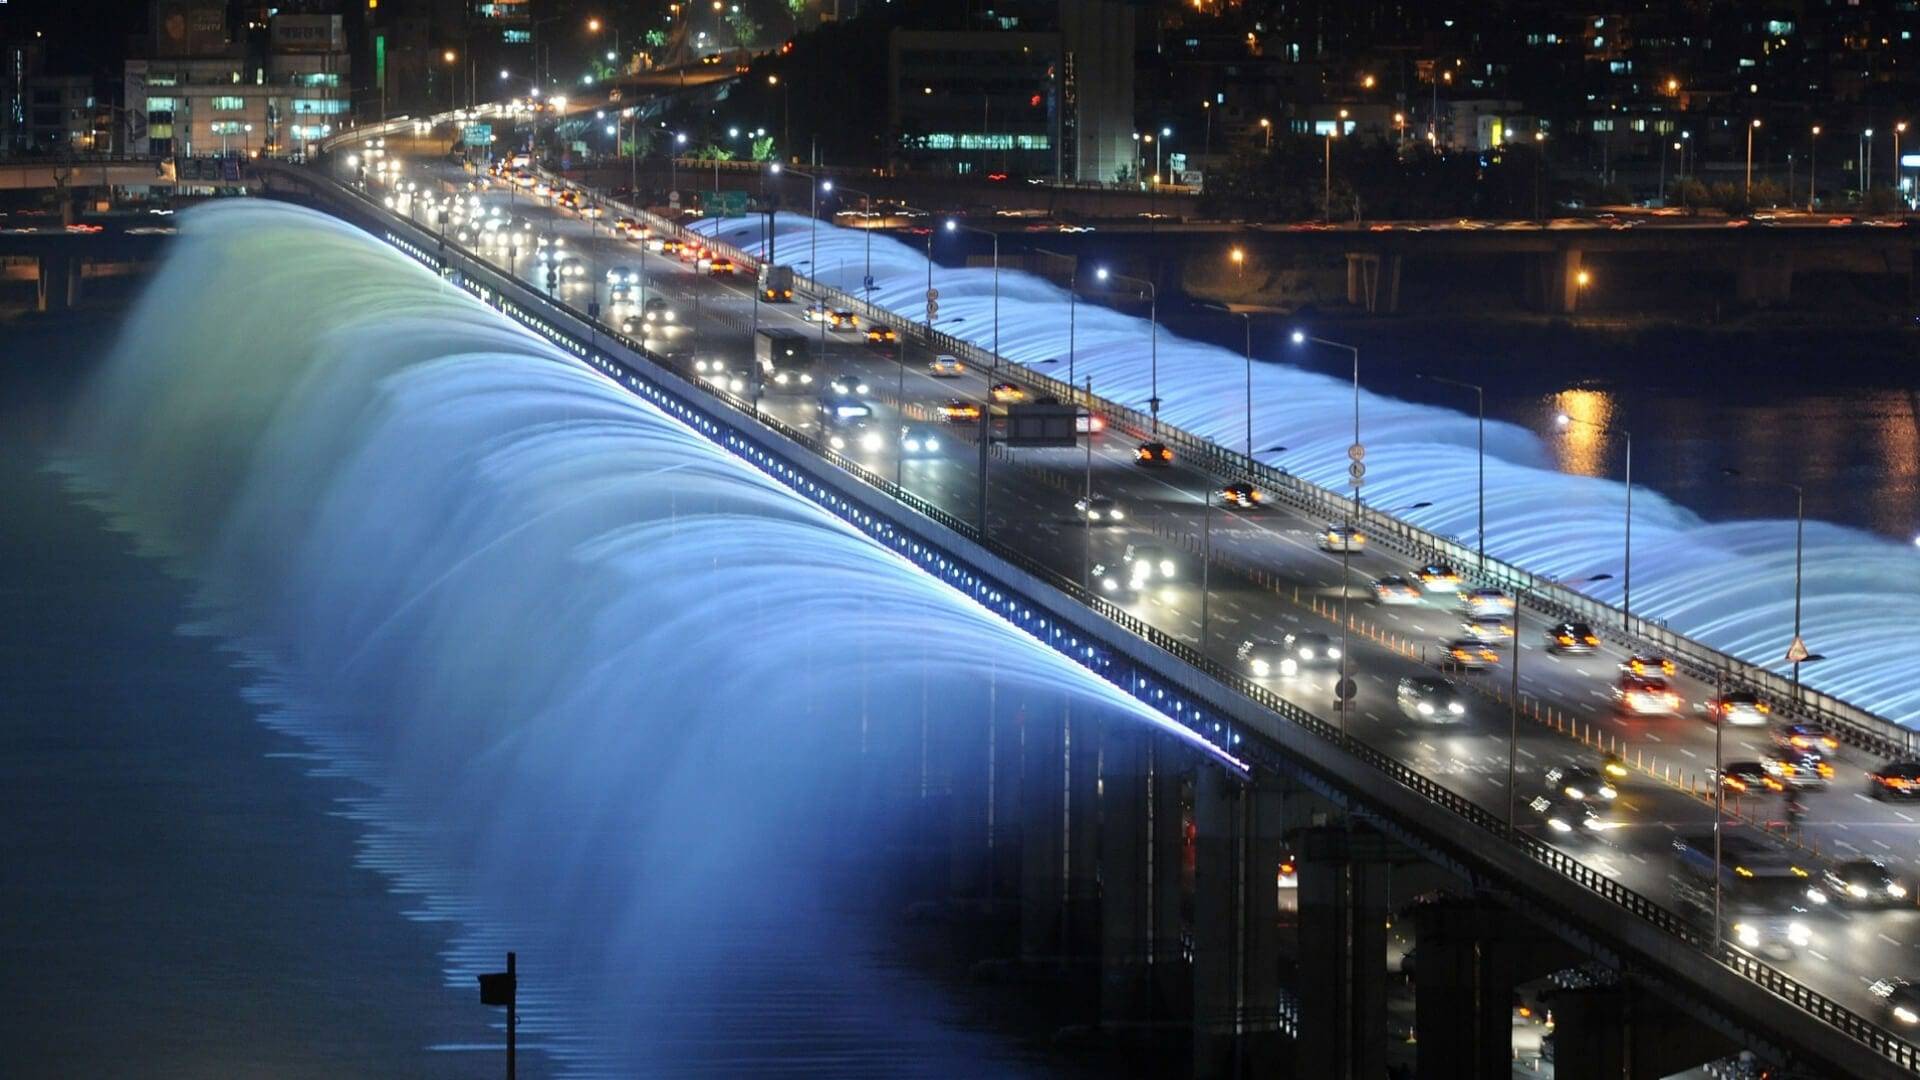 Cars are driving over a bridge where water comes out during night in South Korea.